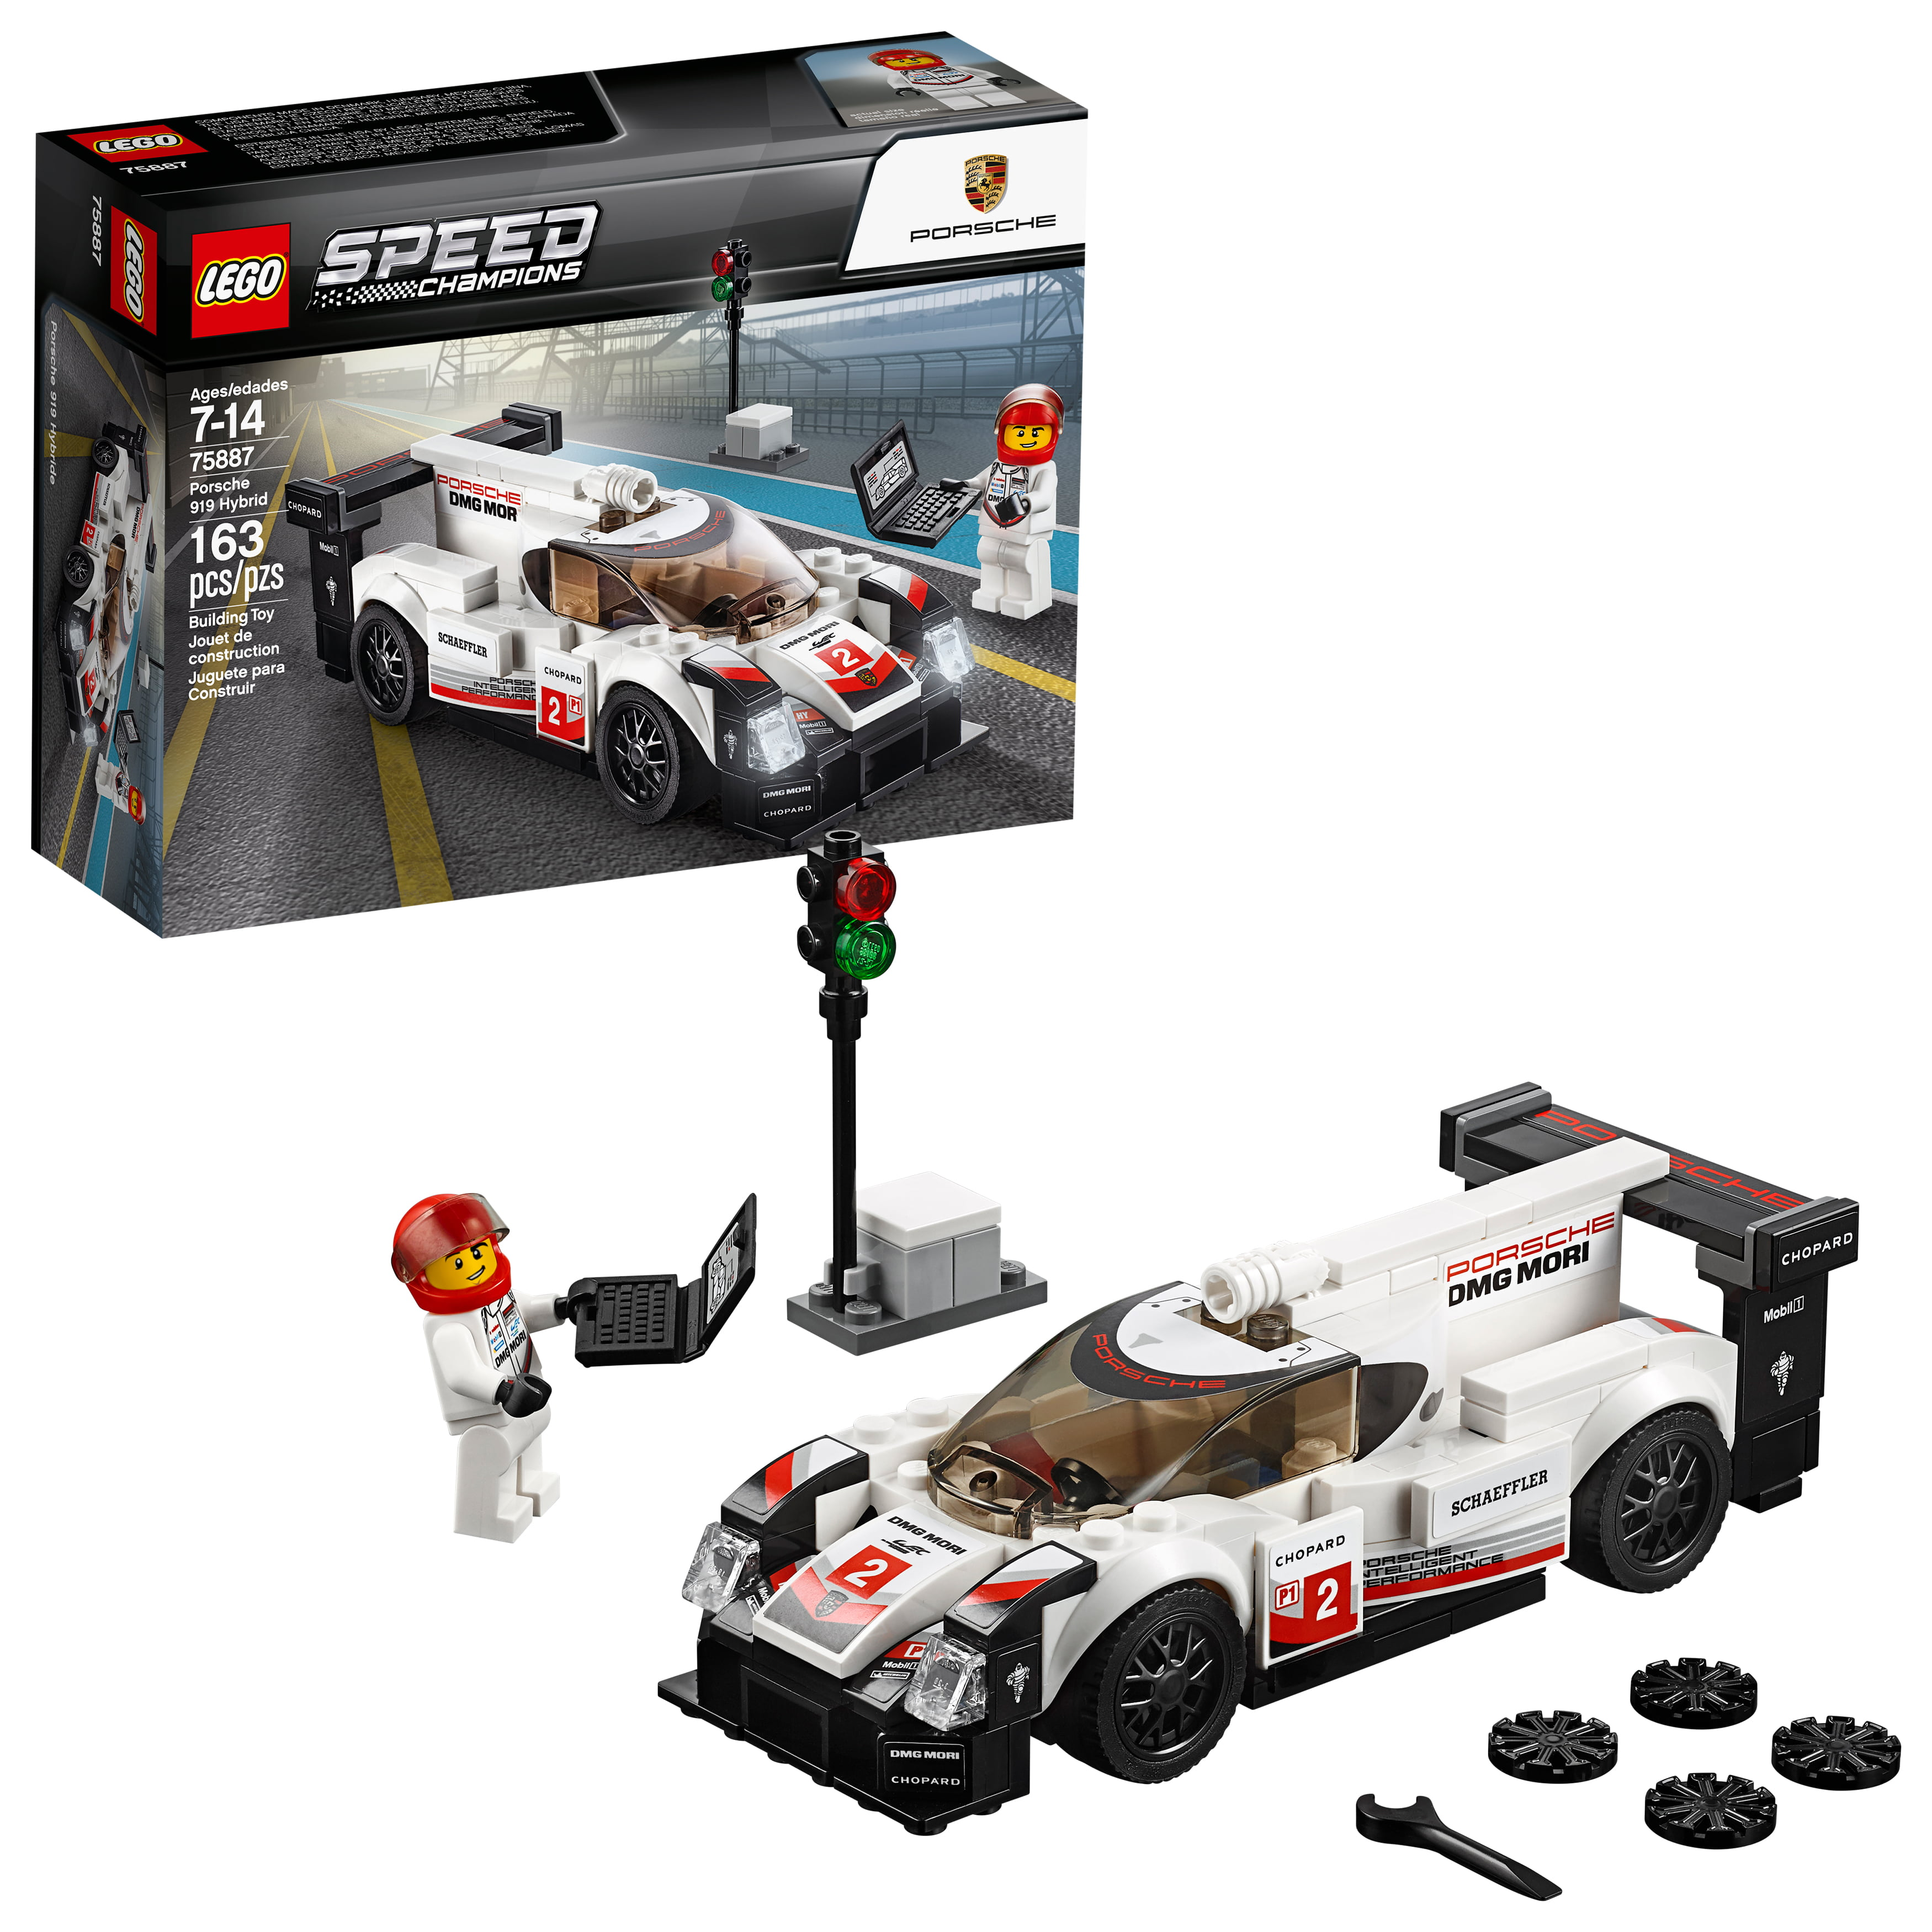 LEGO Speed Champions Porsche 919 Hybrid 75887 (163 Pieces)